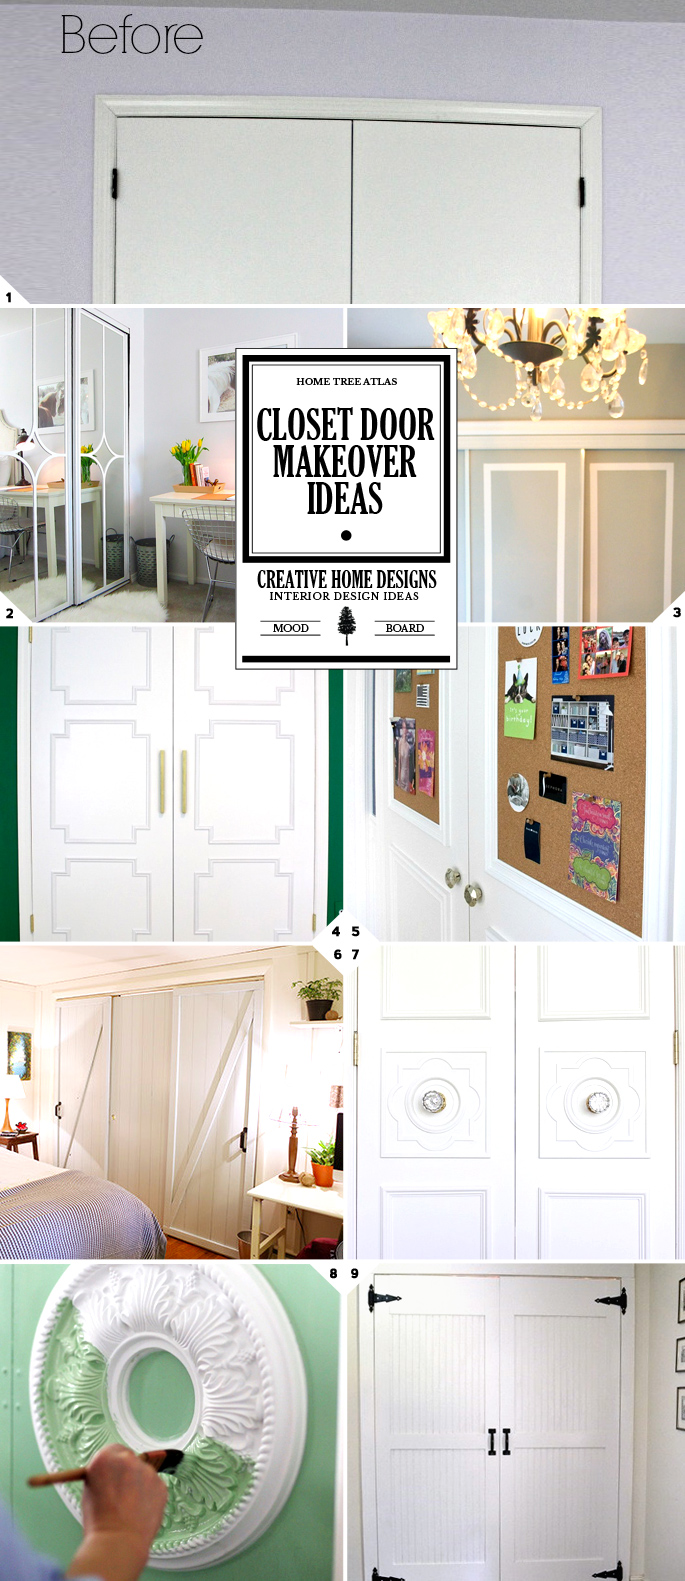 DIY Makeover: Closet door ideas